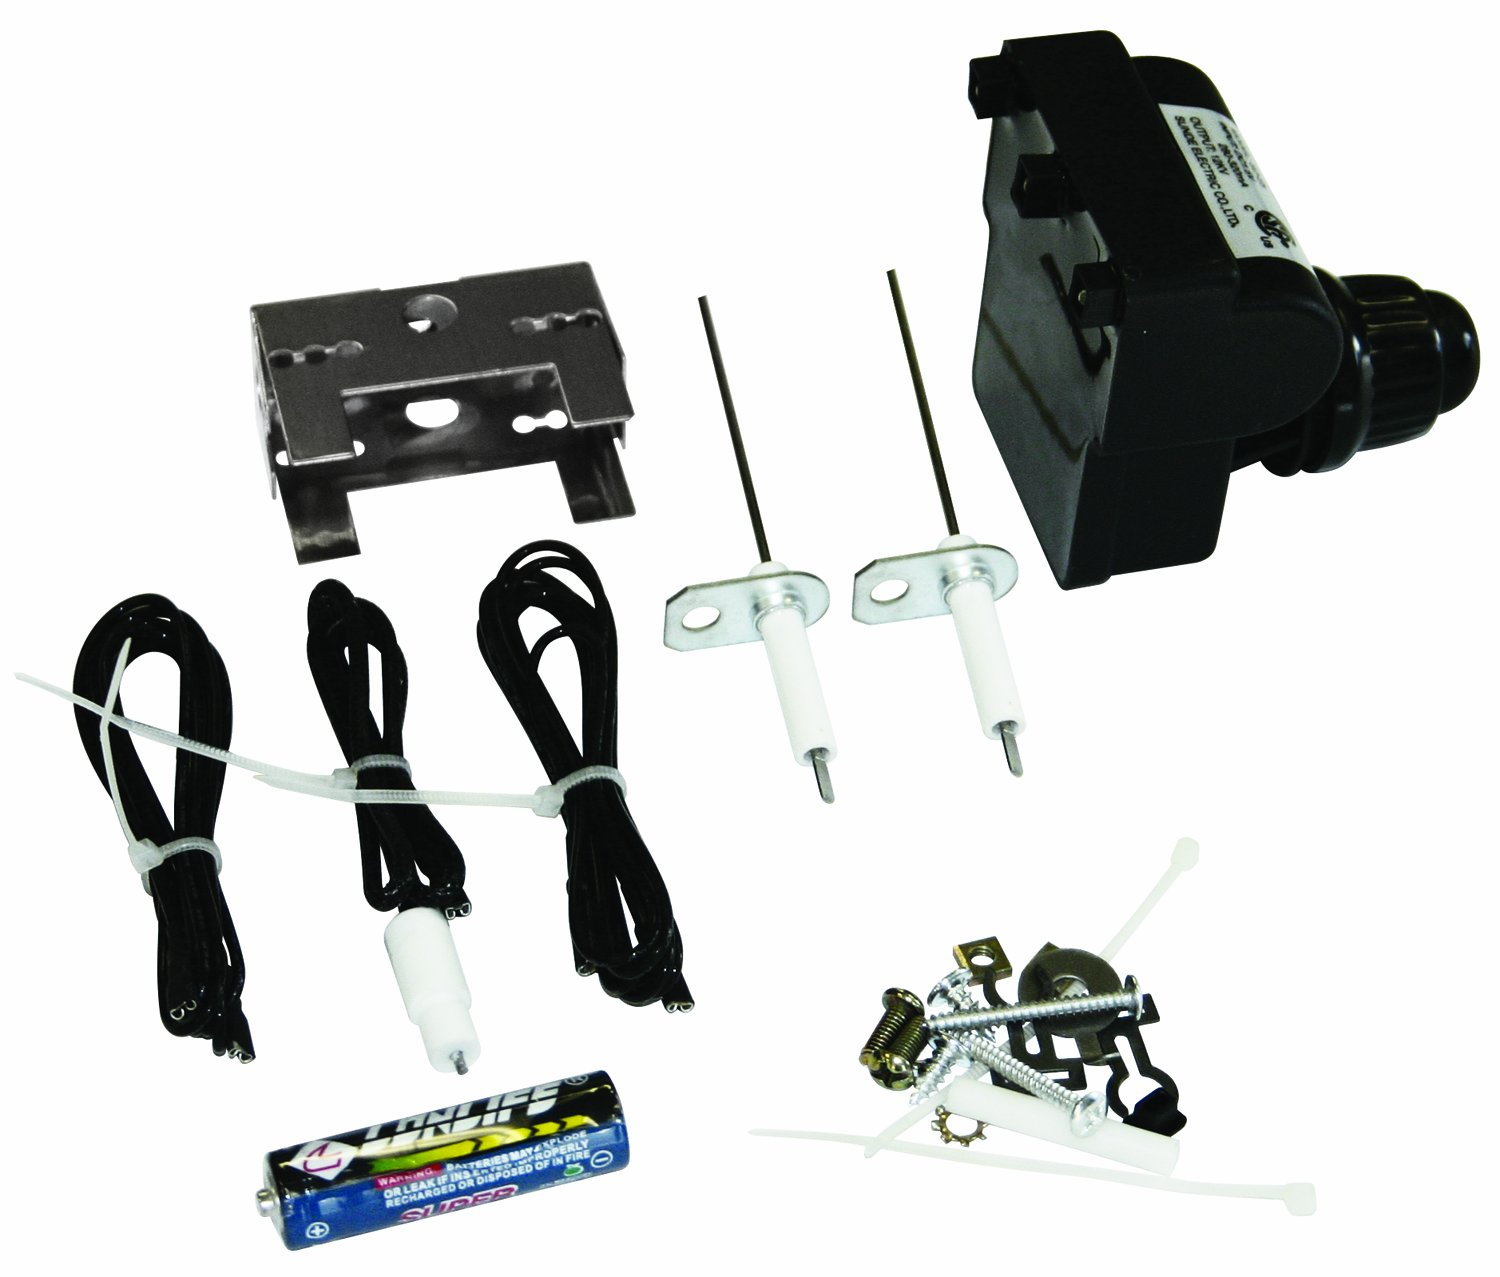 71TSXORhOXL._SL1500_ amazon com grillpro 20620 electric push button igniter grill char broil igniter wiring diagram at bakdesigns.co